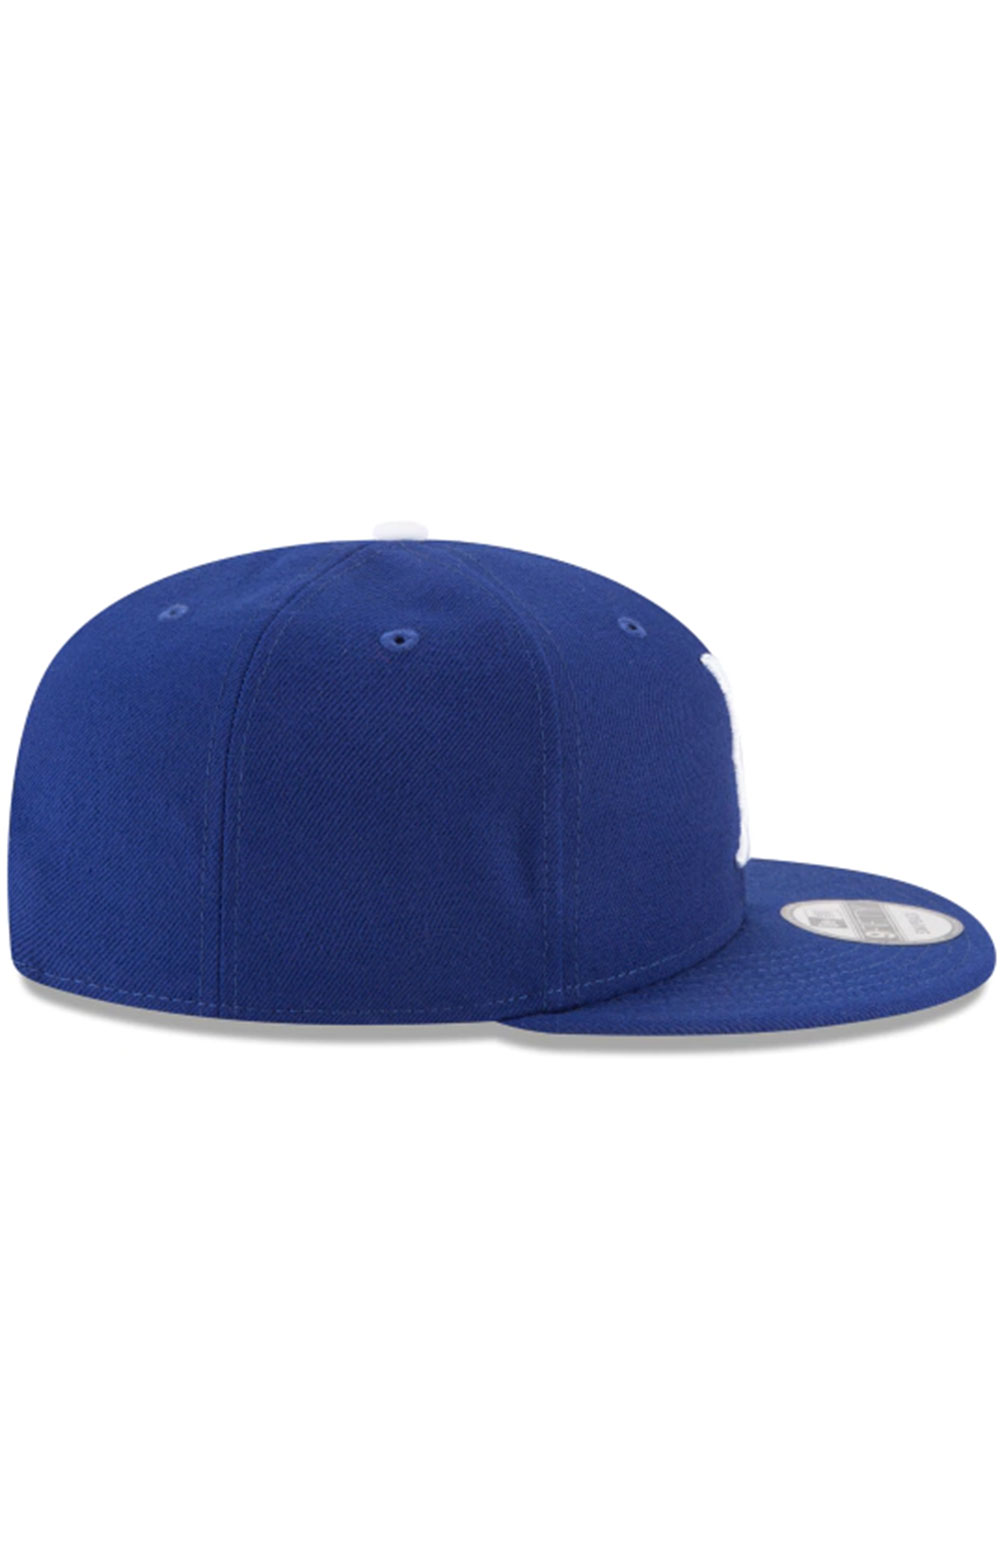 Brooklyn Dodgers Team Color Basic 9Fifty Snap-Back Hat  2